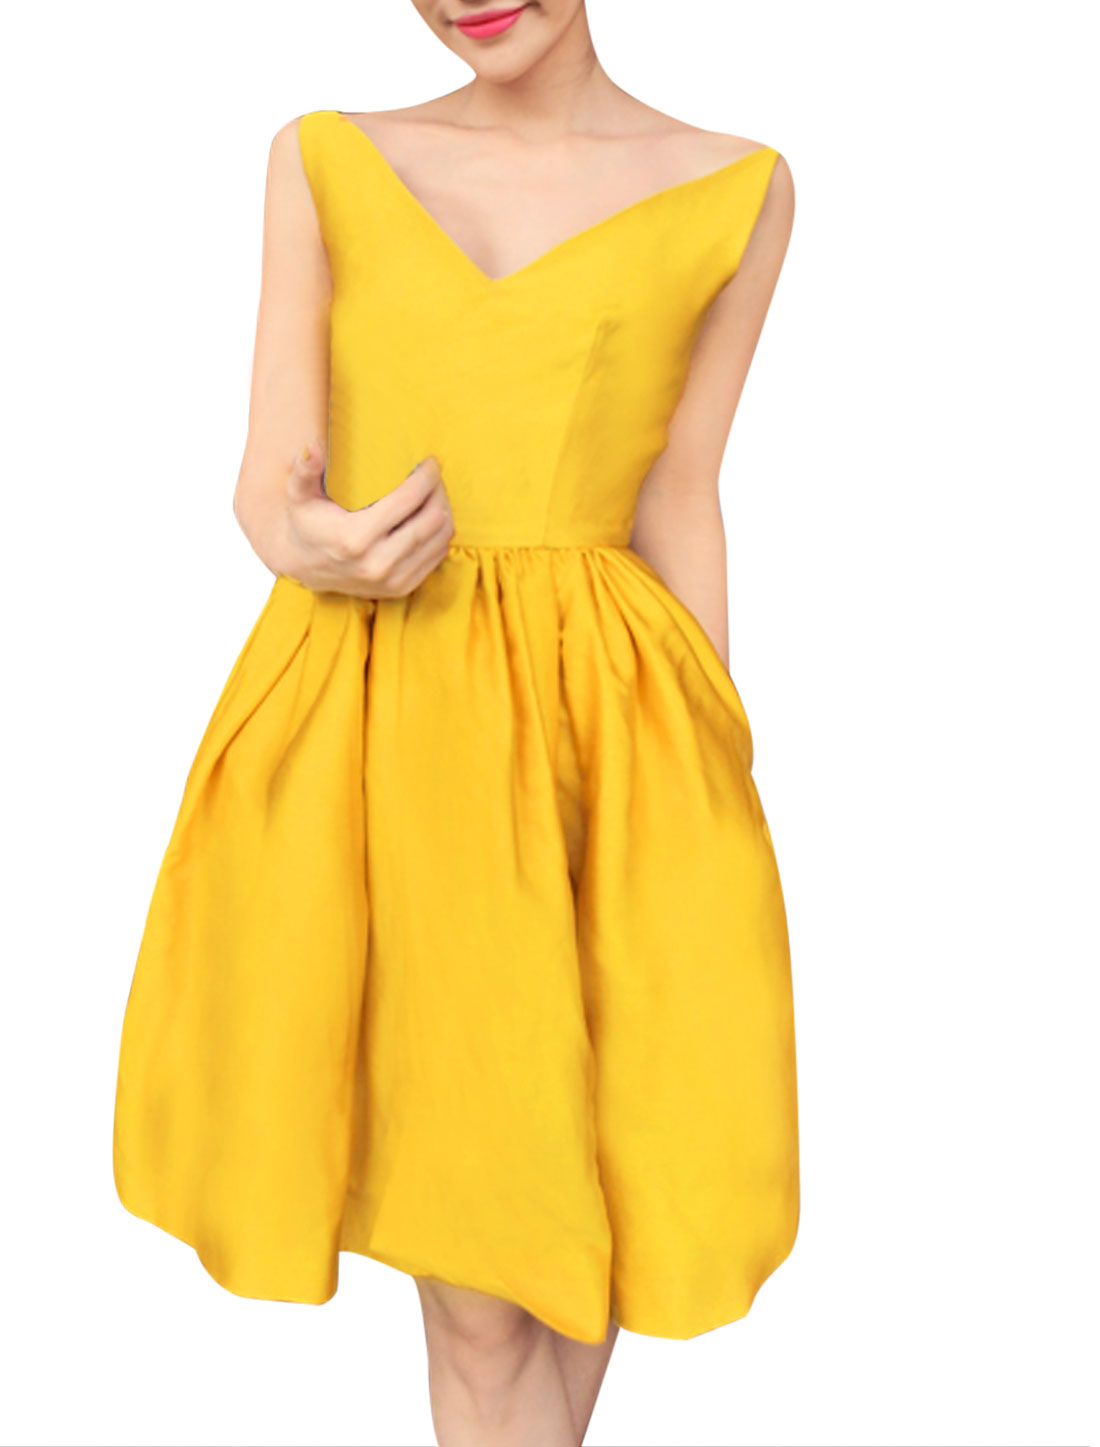 Lady Off Shoulder V Neck Sleeveless Concealed Zipper Side Dress Bright Yellow S